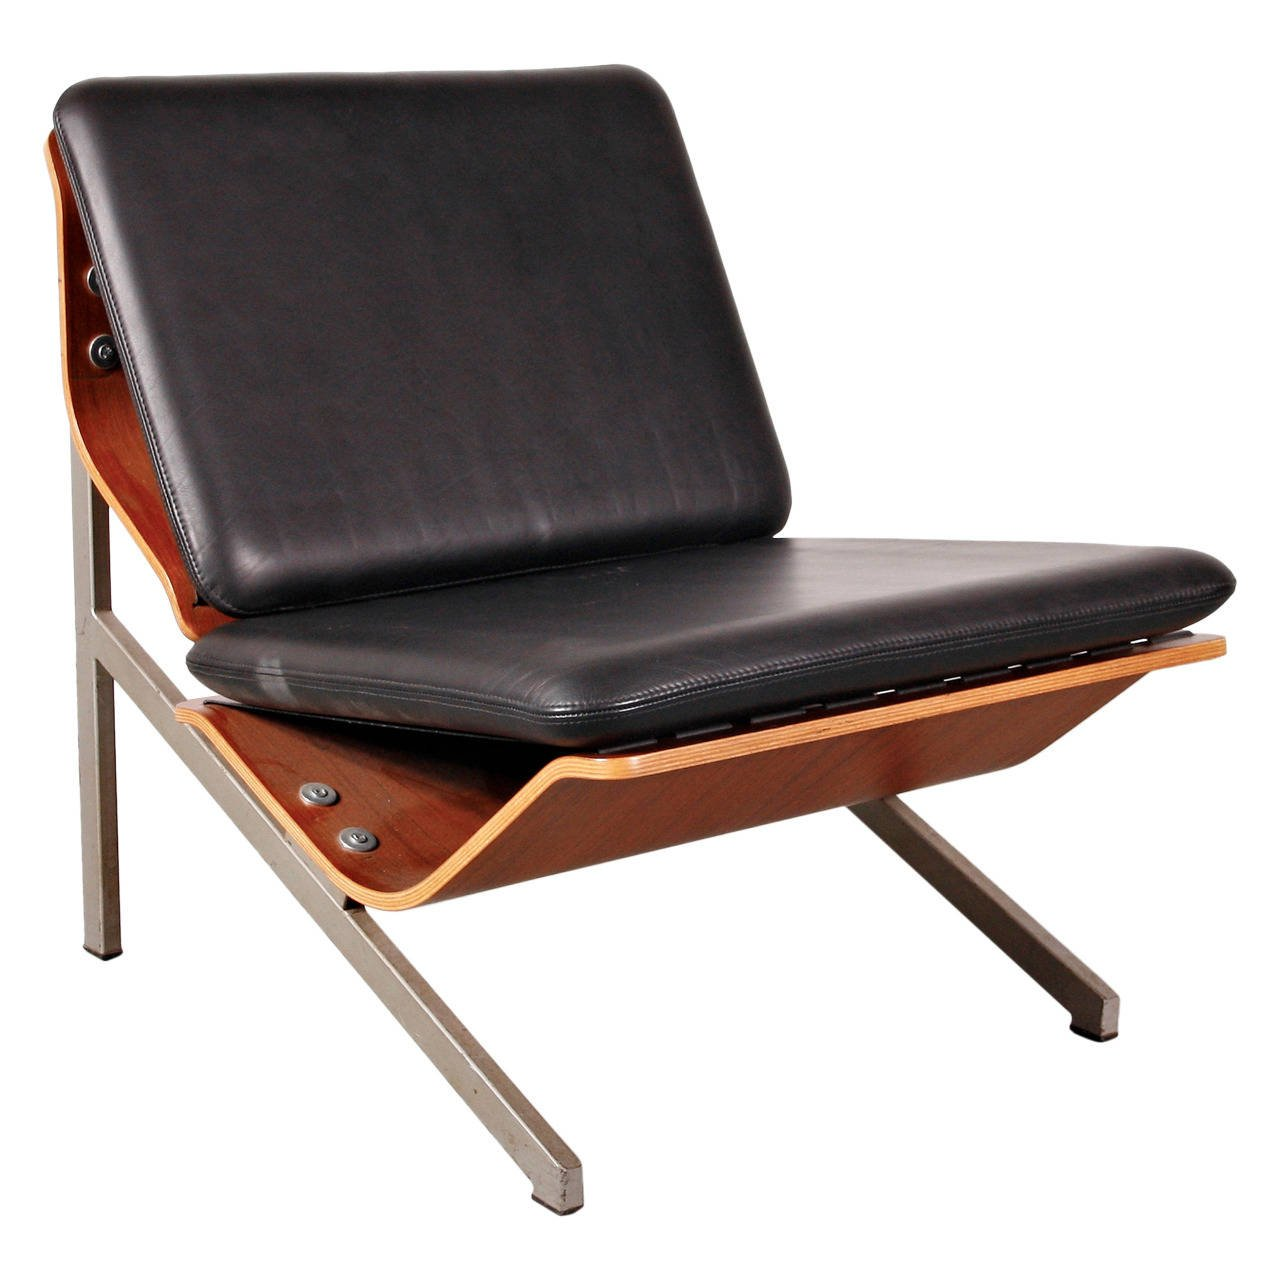 Rare Cornelis Zitman Leather Easy Chair, 1964